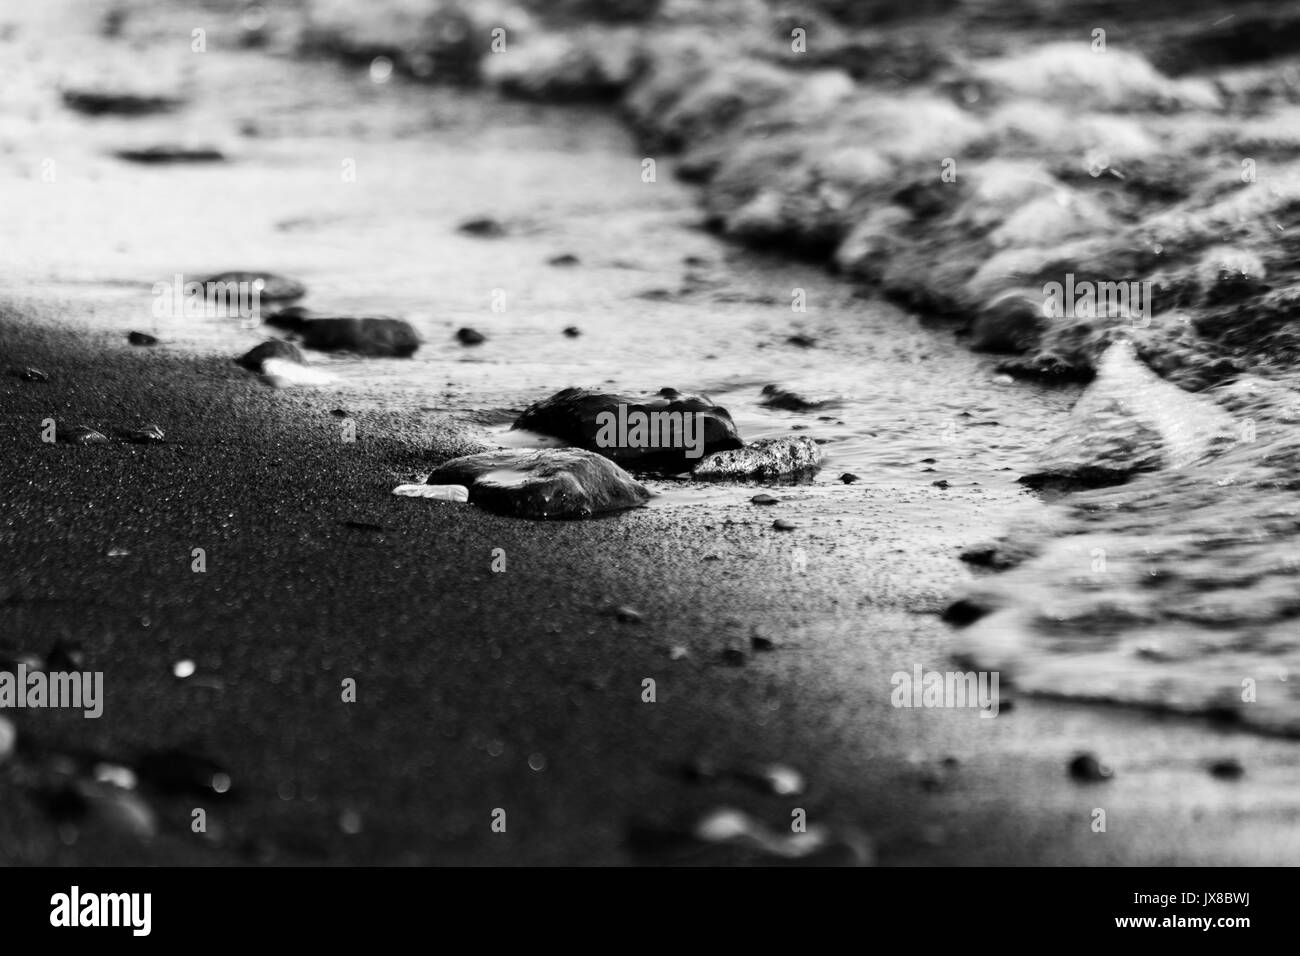 A close shot of a lake shore, with details of water bubbles and little stones and pebble on the sand - Stock Image